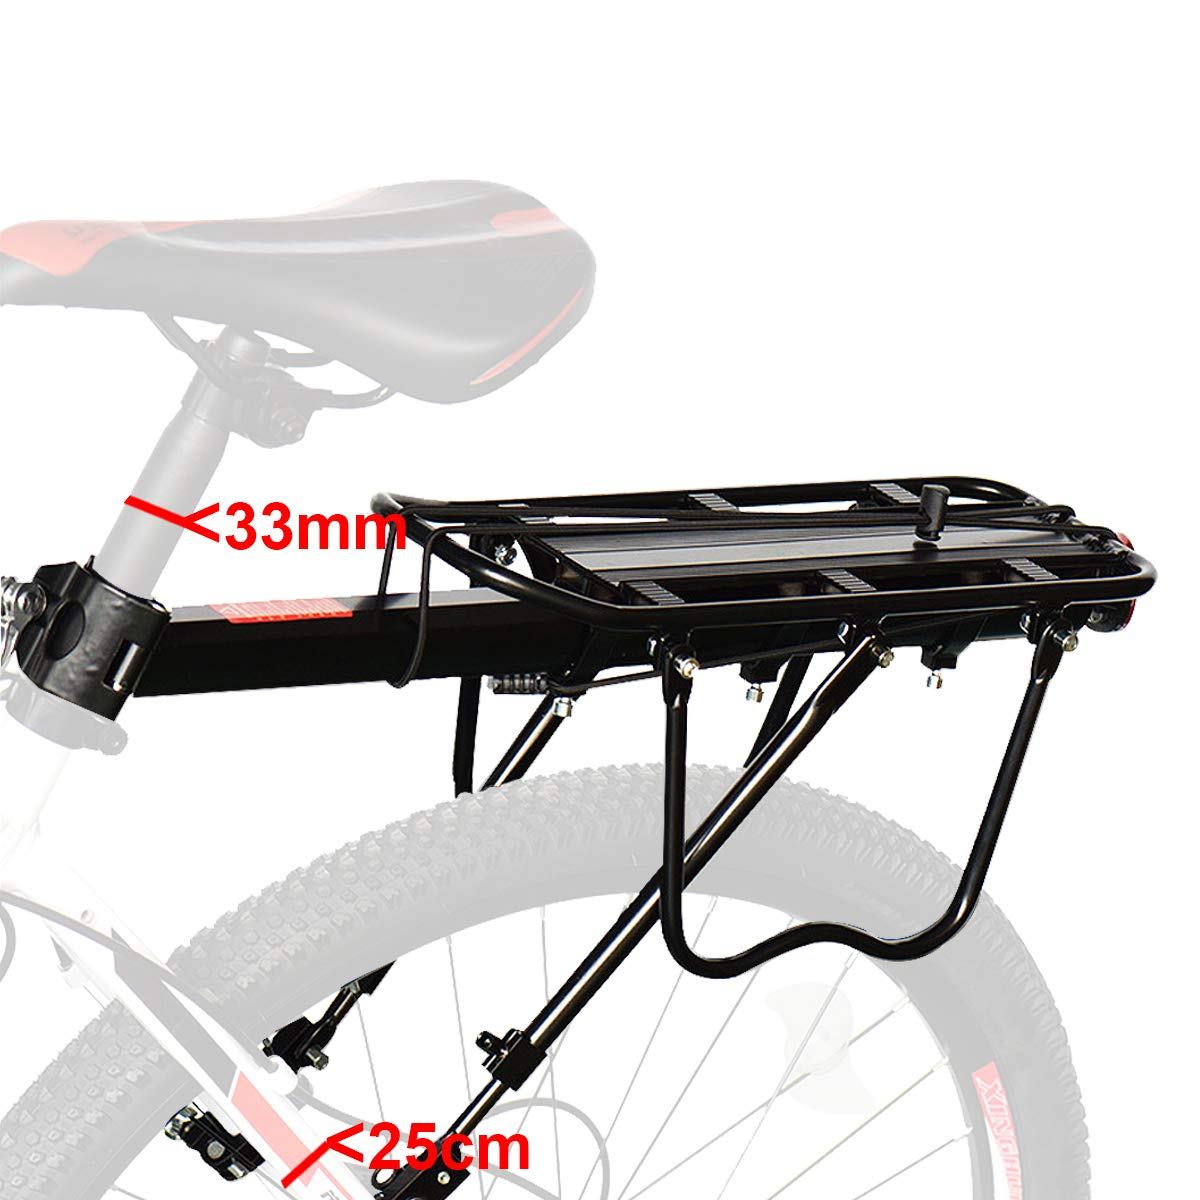 Bicycle Carrier Racks Anti-Corrosion And High Hardness Fit Almost Bikes Mountain Bike Etc. Bike Luggage Cargo Rack Strong Aluminium Alloy Material 90Kg Capacity Bicycle Rear Rack Road Bike